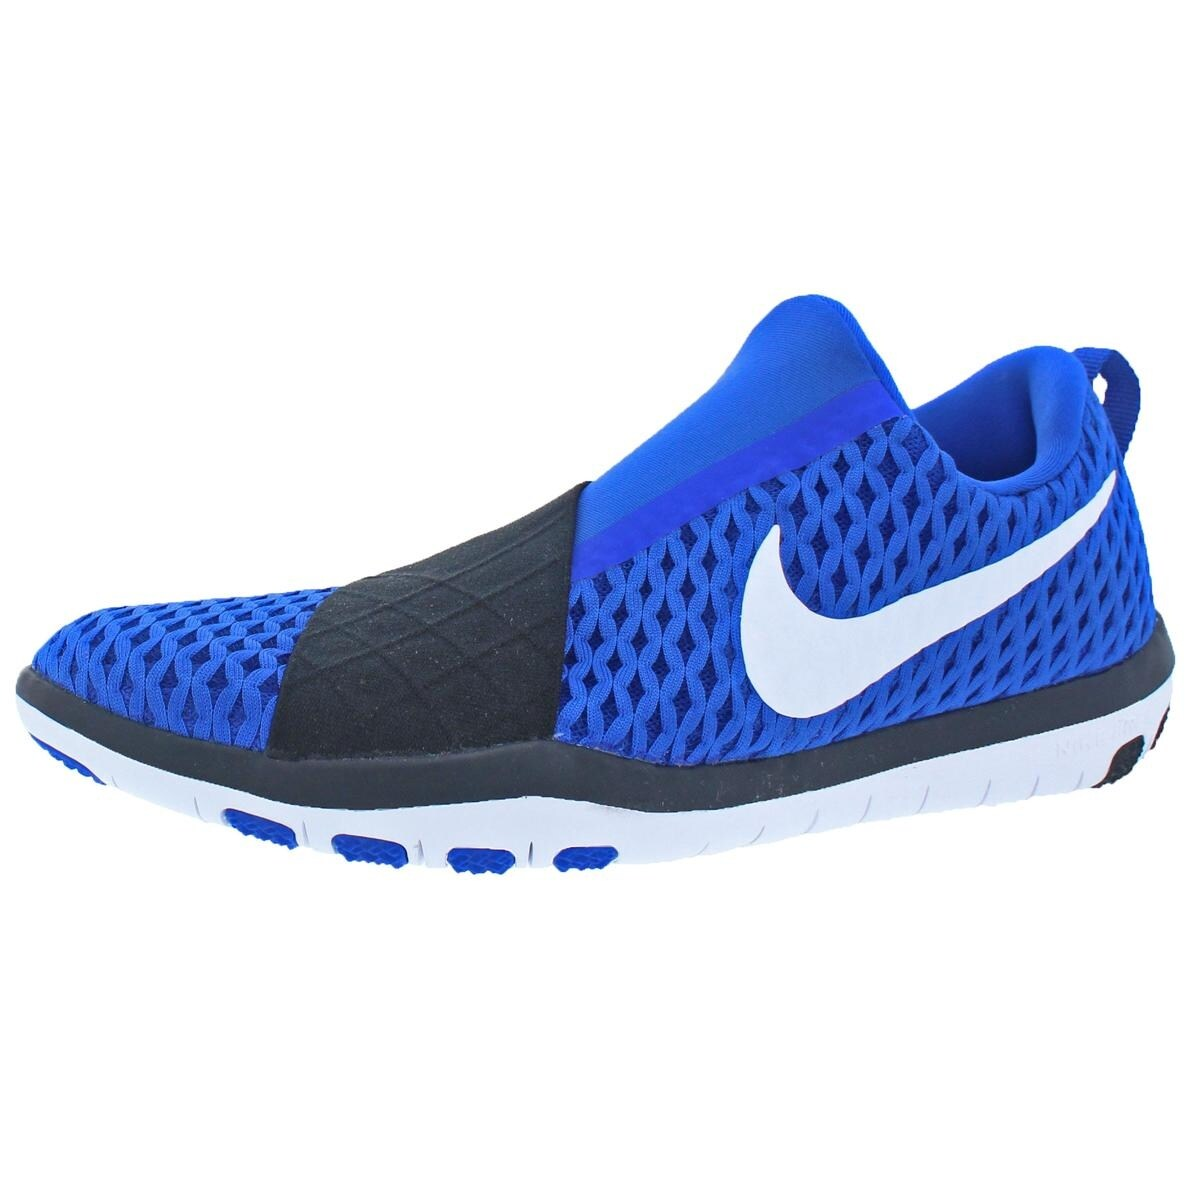 hot sale online c260f 9f6ed Shop Nike Womens Free Connect Trainers Training Mesh - Free Shipping On  Orders Over  45 - Overstock - 21942839